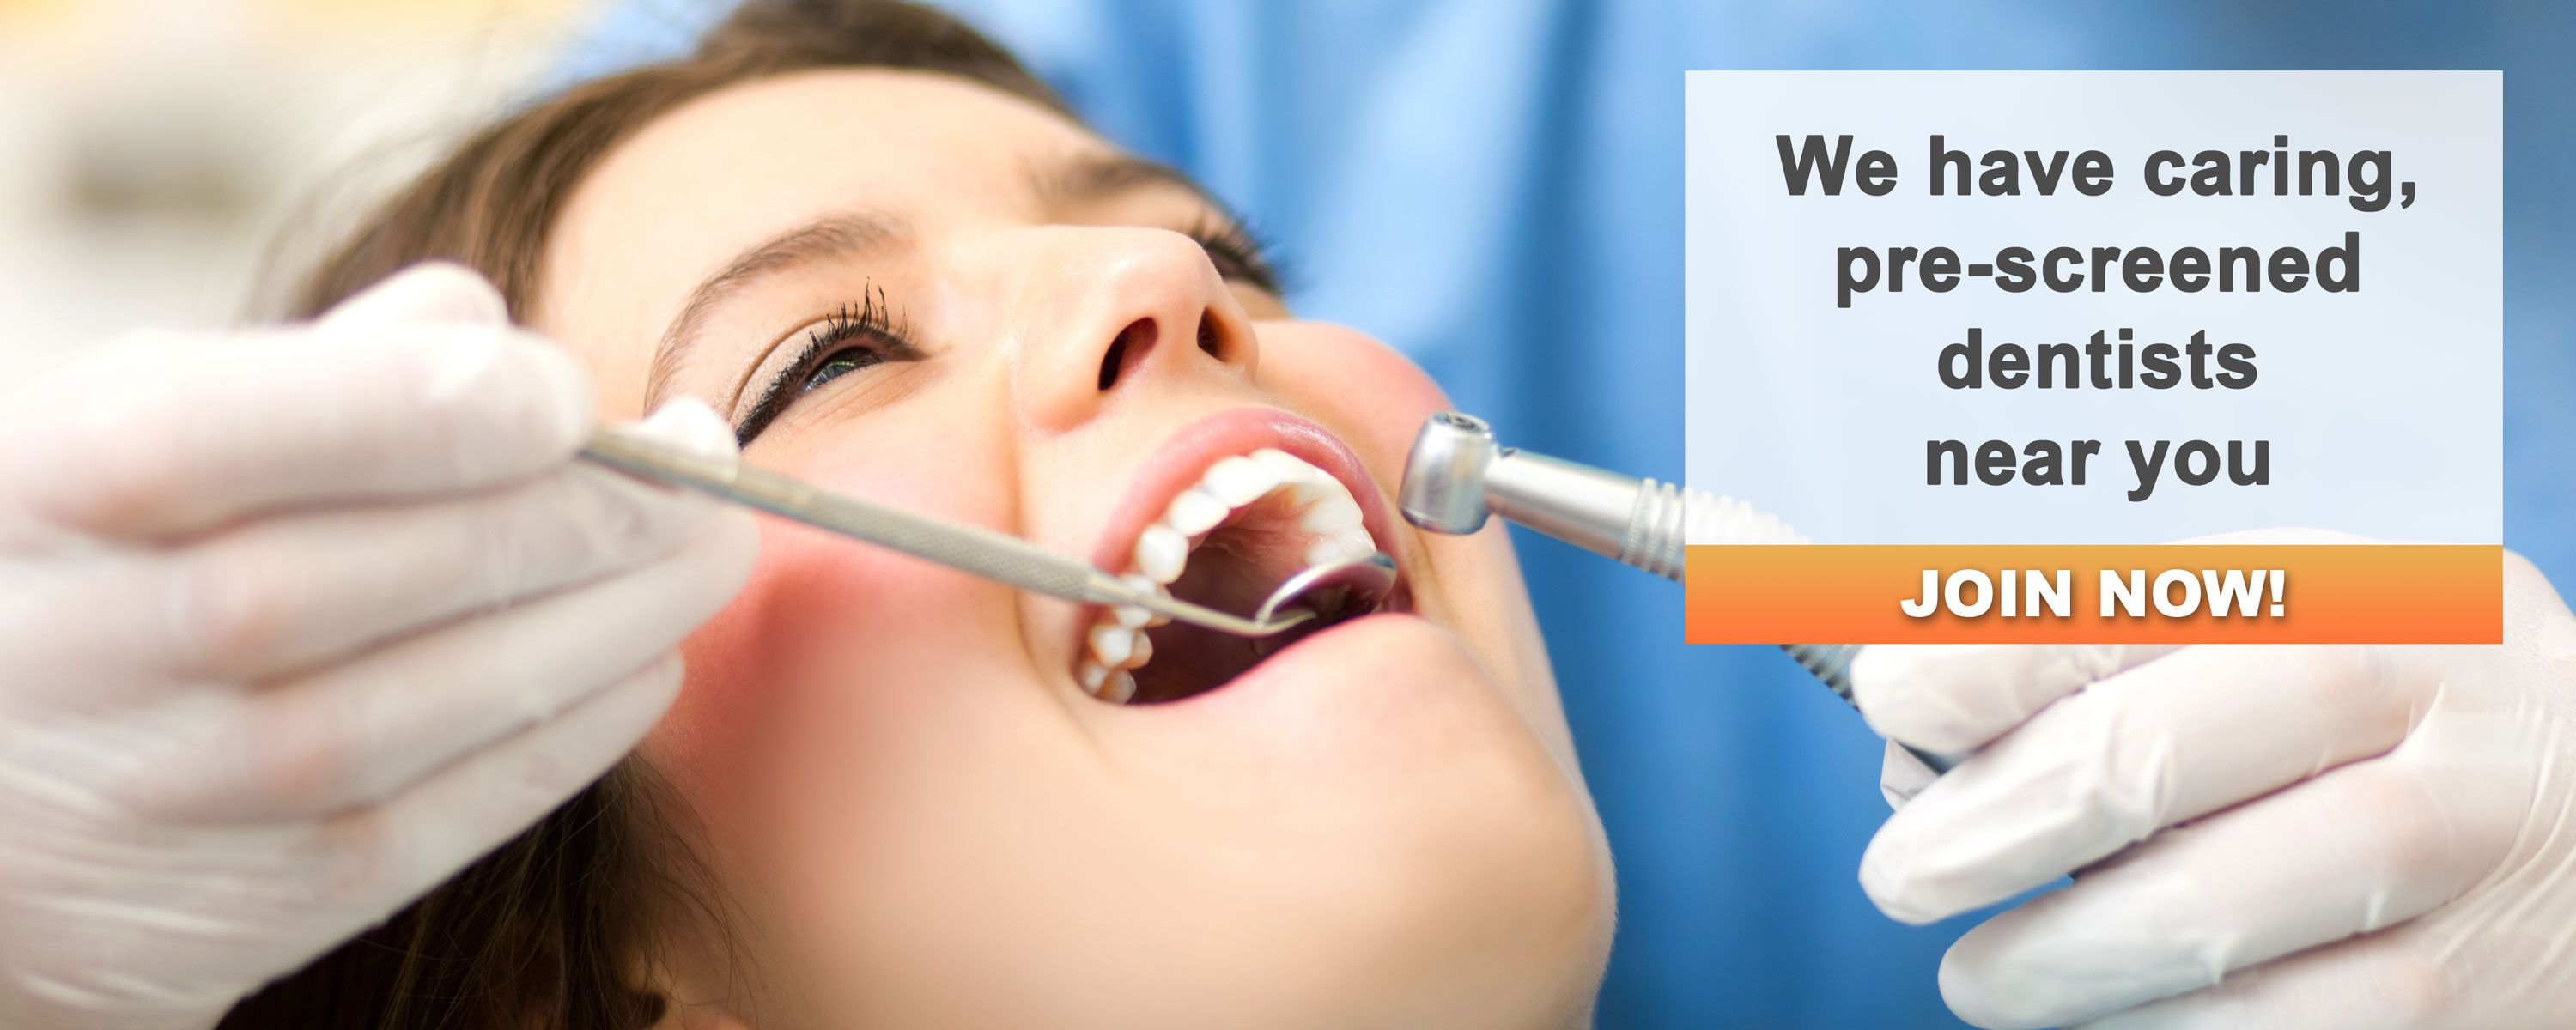 Discount Dental Services At No Cost Emergency Dental Services